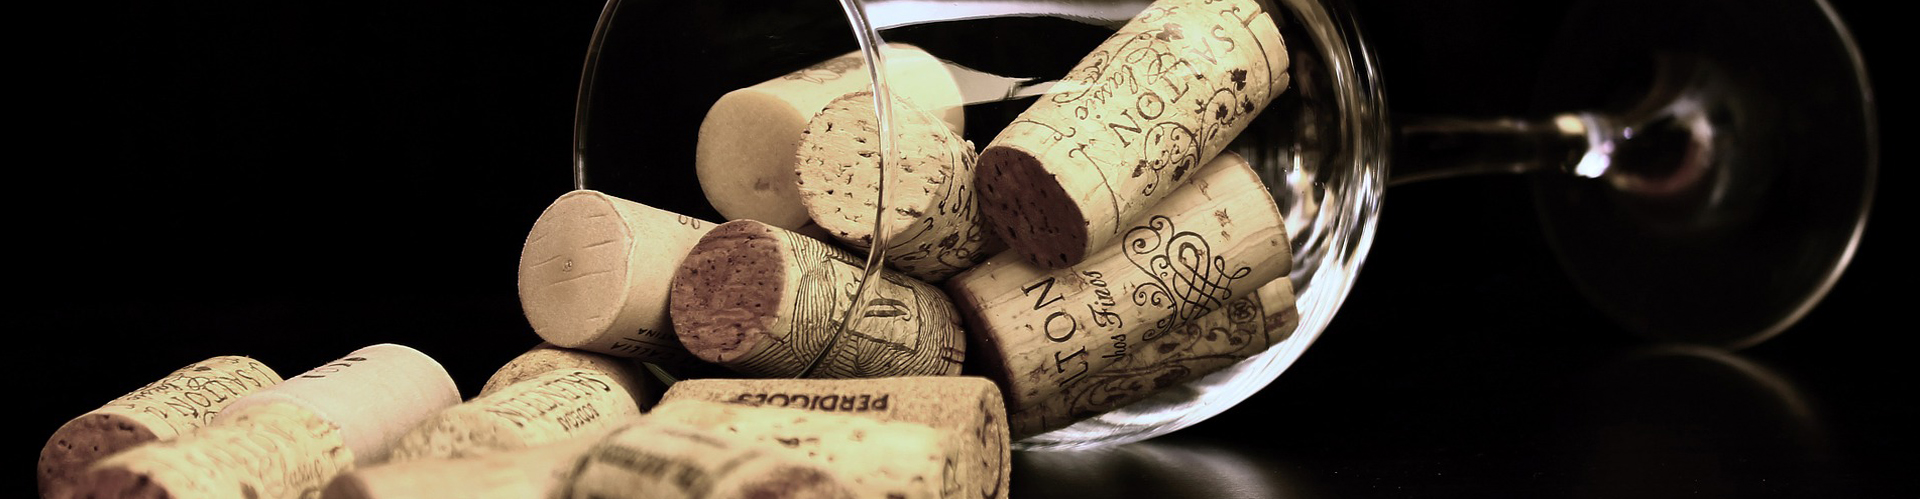 wine and corks.jpg